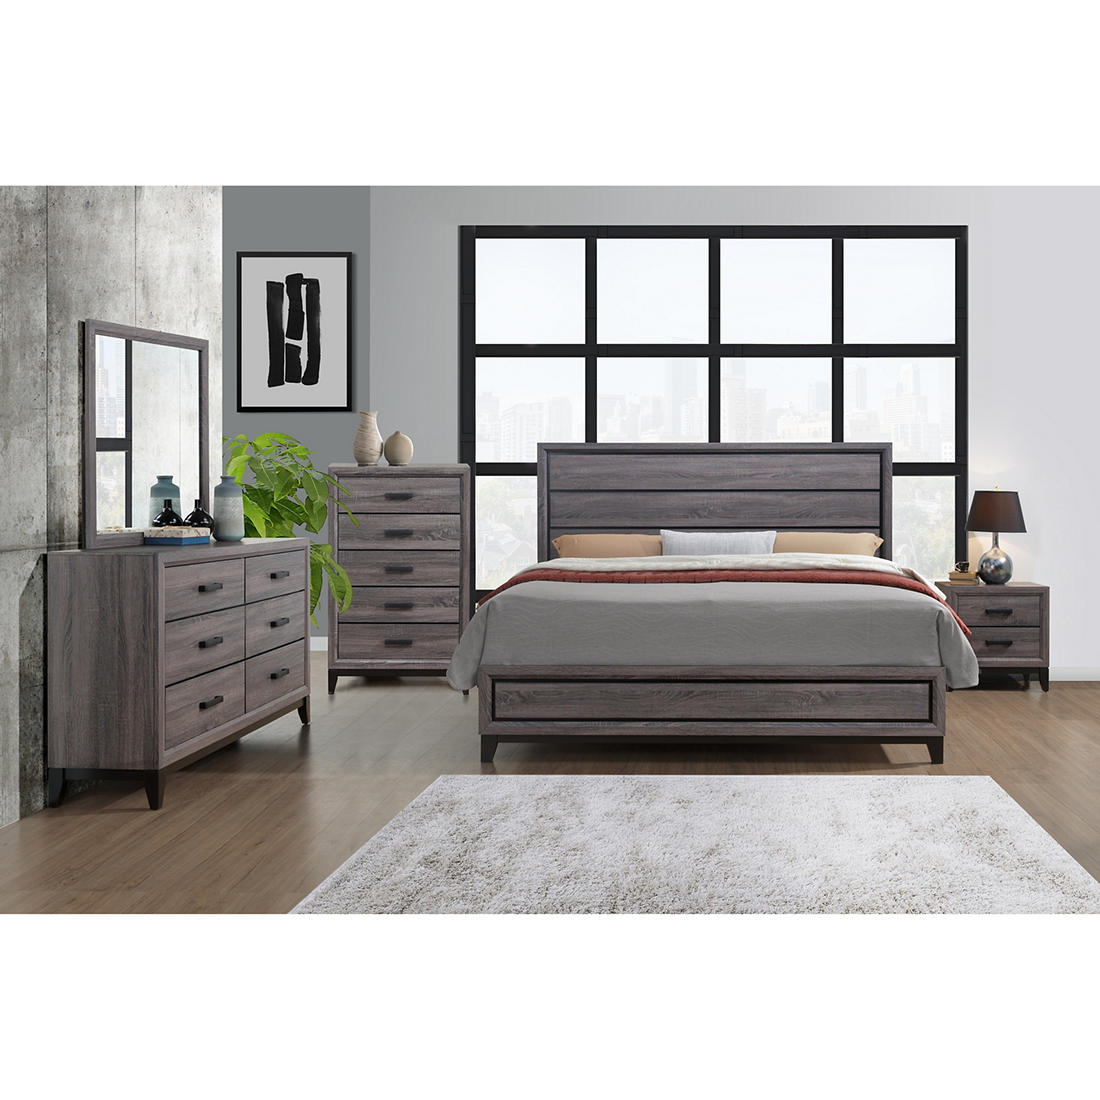 Kate Kate Gr Qbg 5 Pc Queen Bedroom Set Beechwood Gray Bjs Wholesale Club